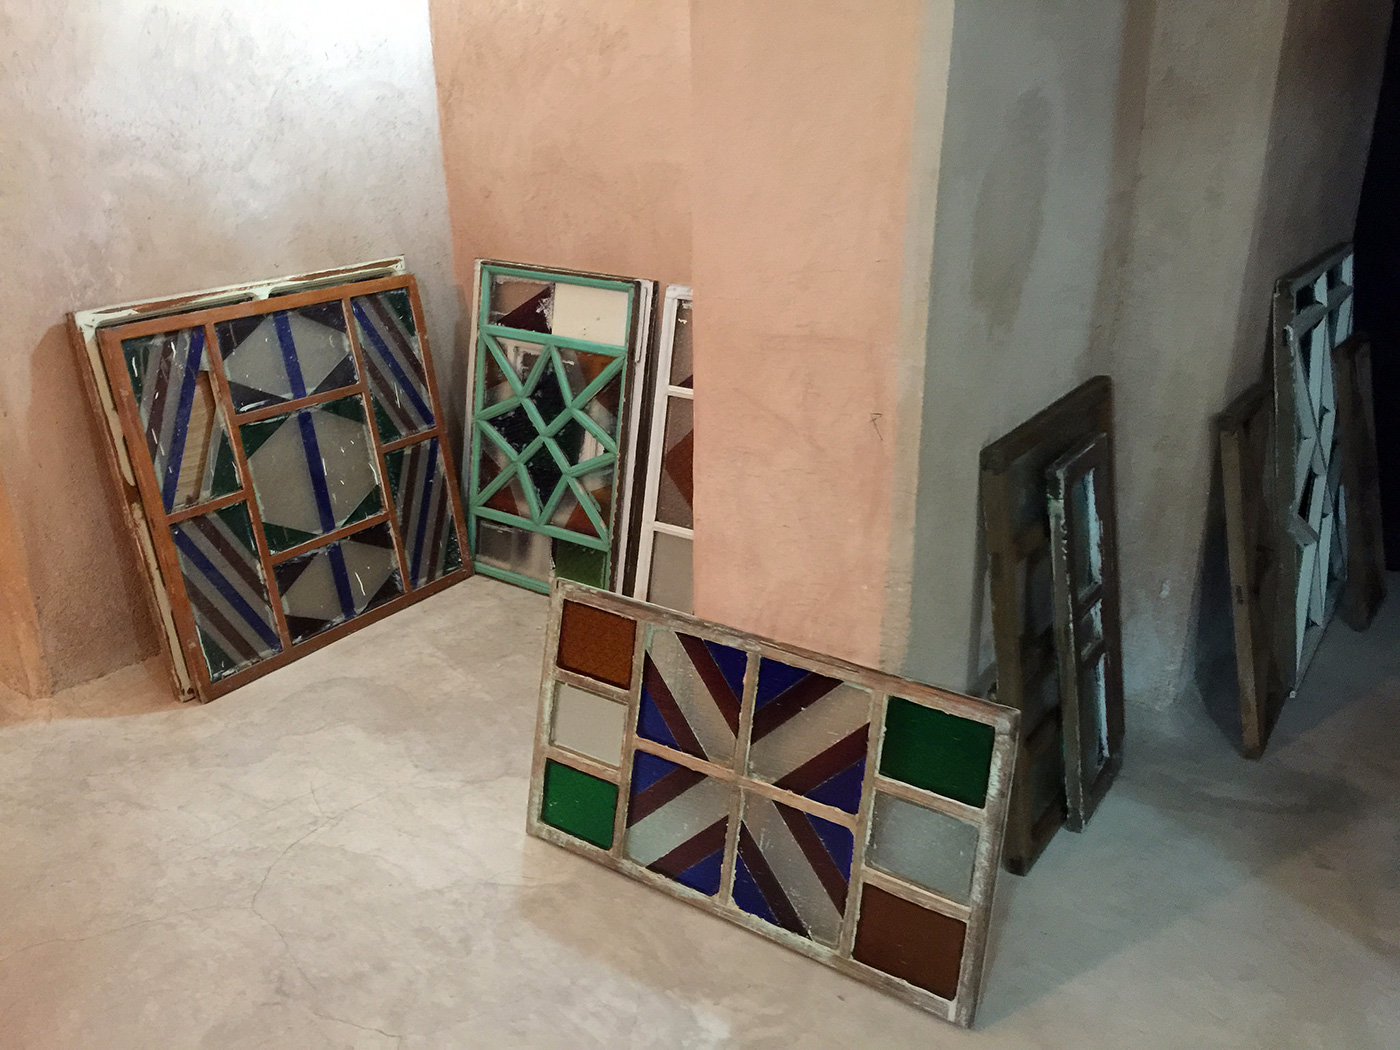 Vintage windows from Mecca make up this installation by Ahmed Mater in the vaults of El Badii Palace.